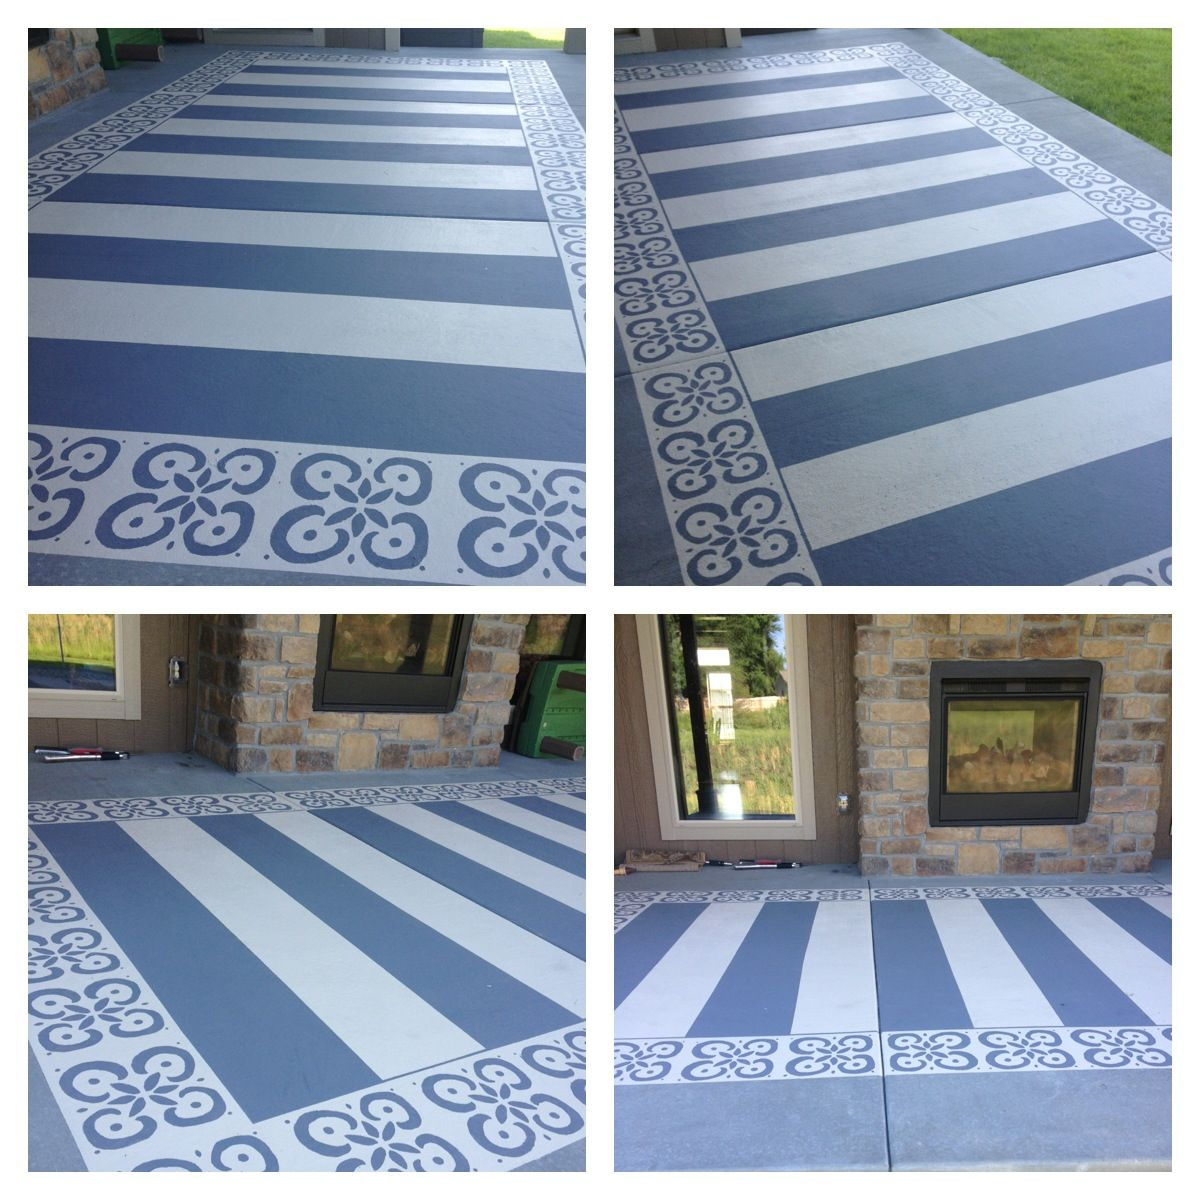 Top 10 Stencil And Painted Rug Ideas For Wood Floors: Painted Patio With Patio & Concrete Paint, Blue Tape And A